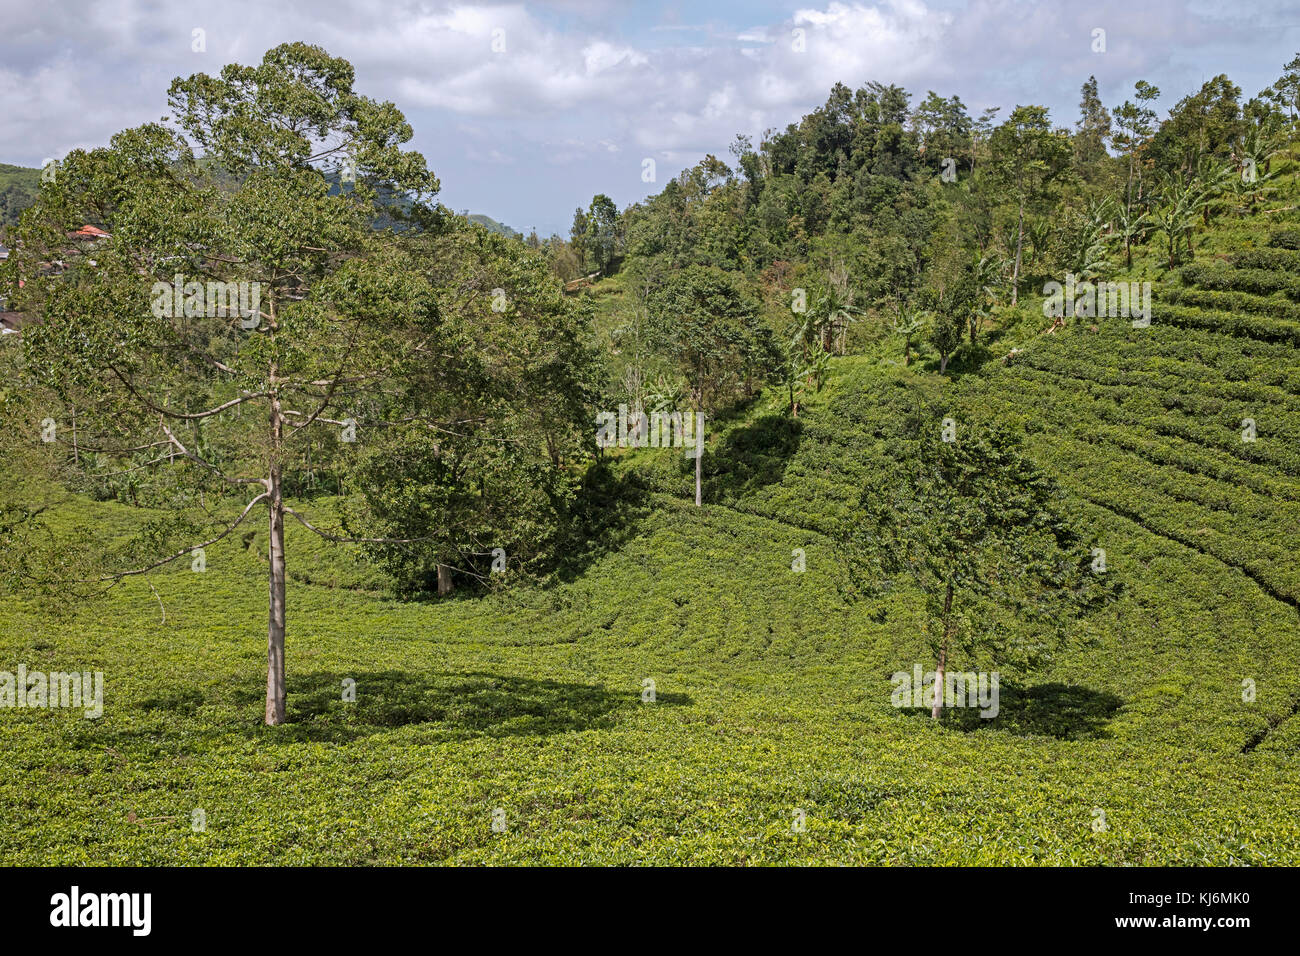 Terraced tea plantations on the slopes of Mount Lawu / Gunung Lawu near Solo / Surakarta, Central Java, Indonesia - Stock Image